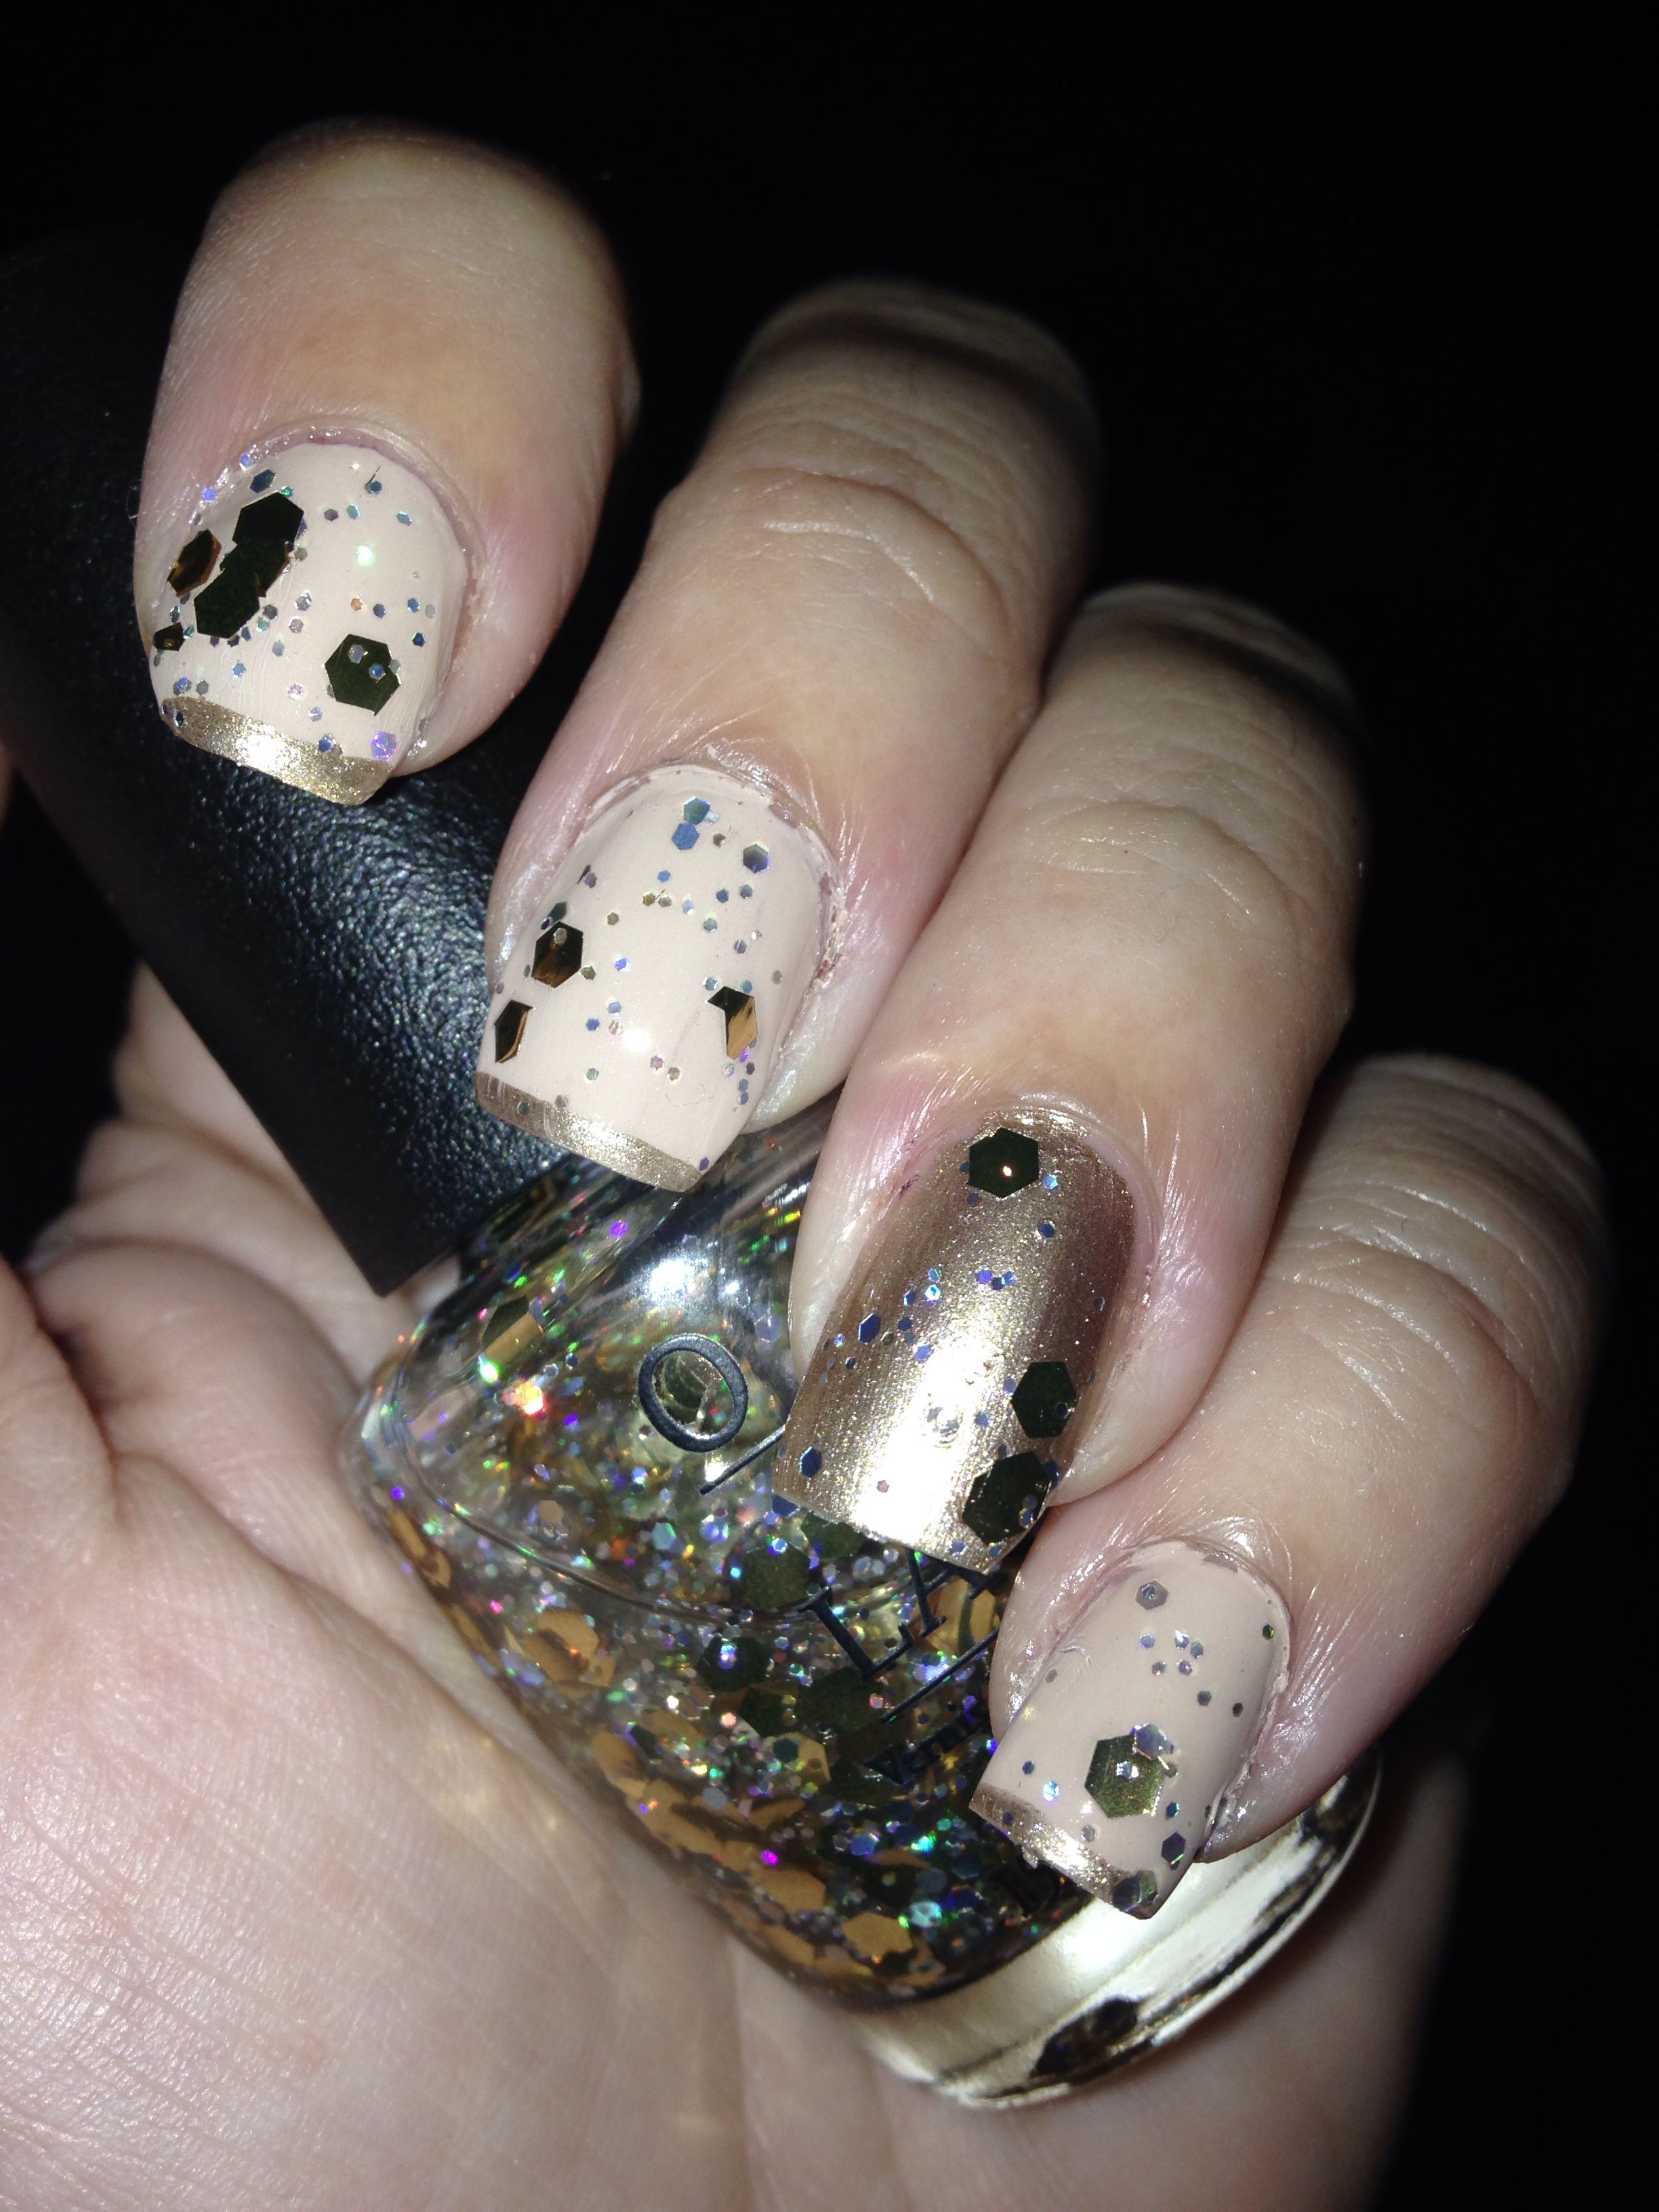 Sparkly Holiday Nails by Me